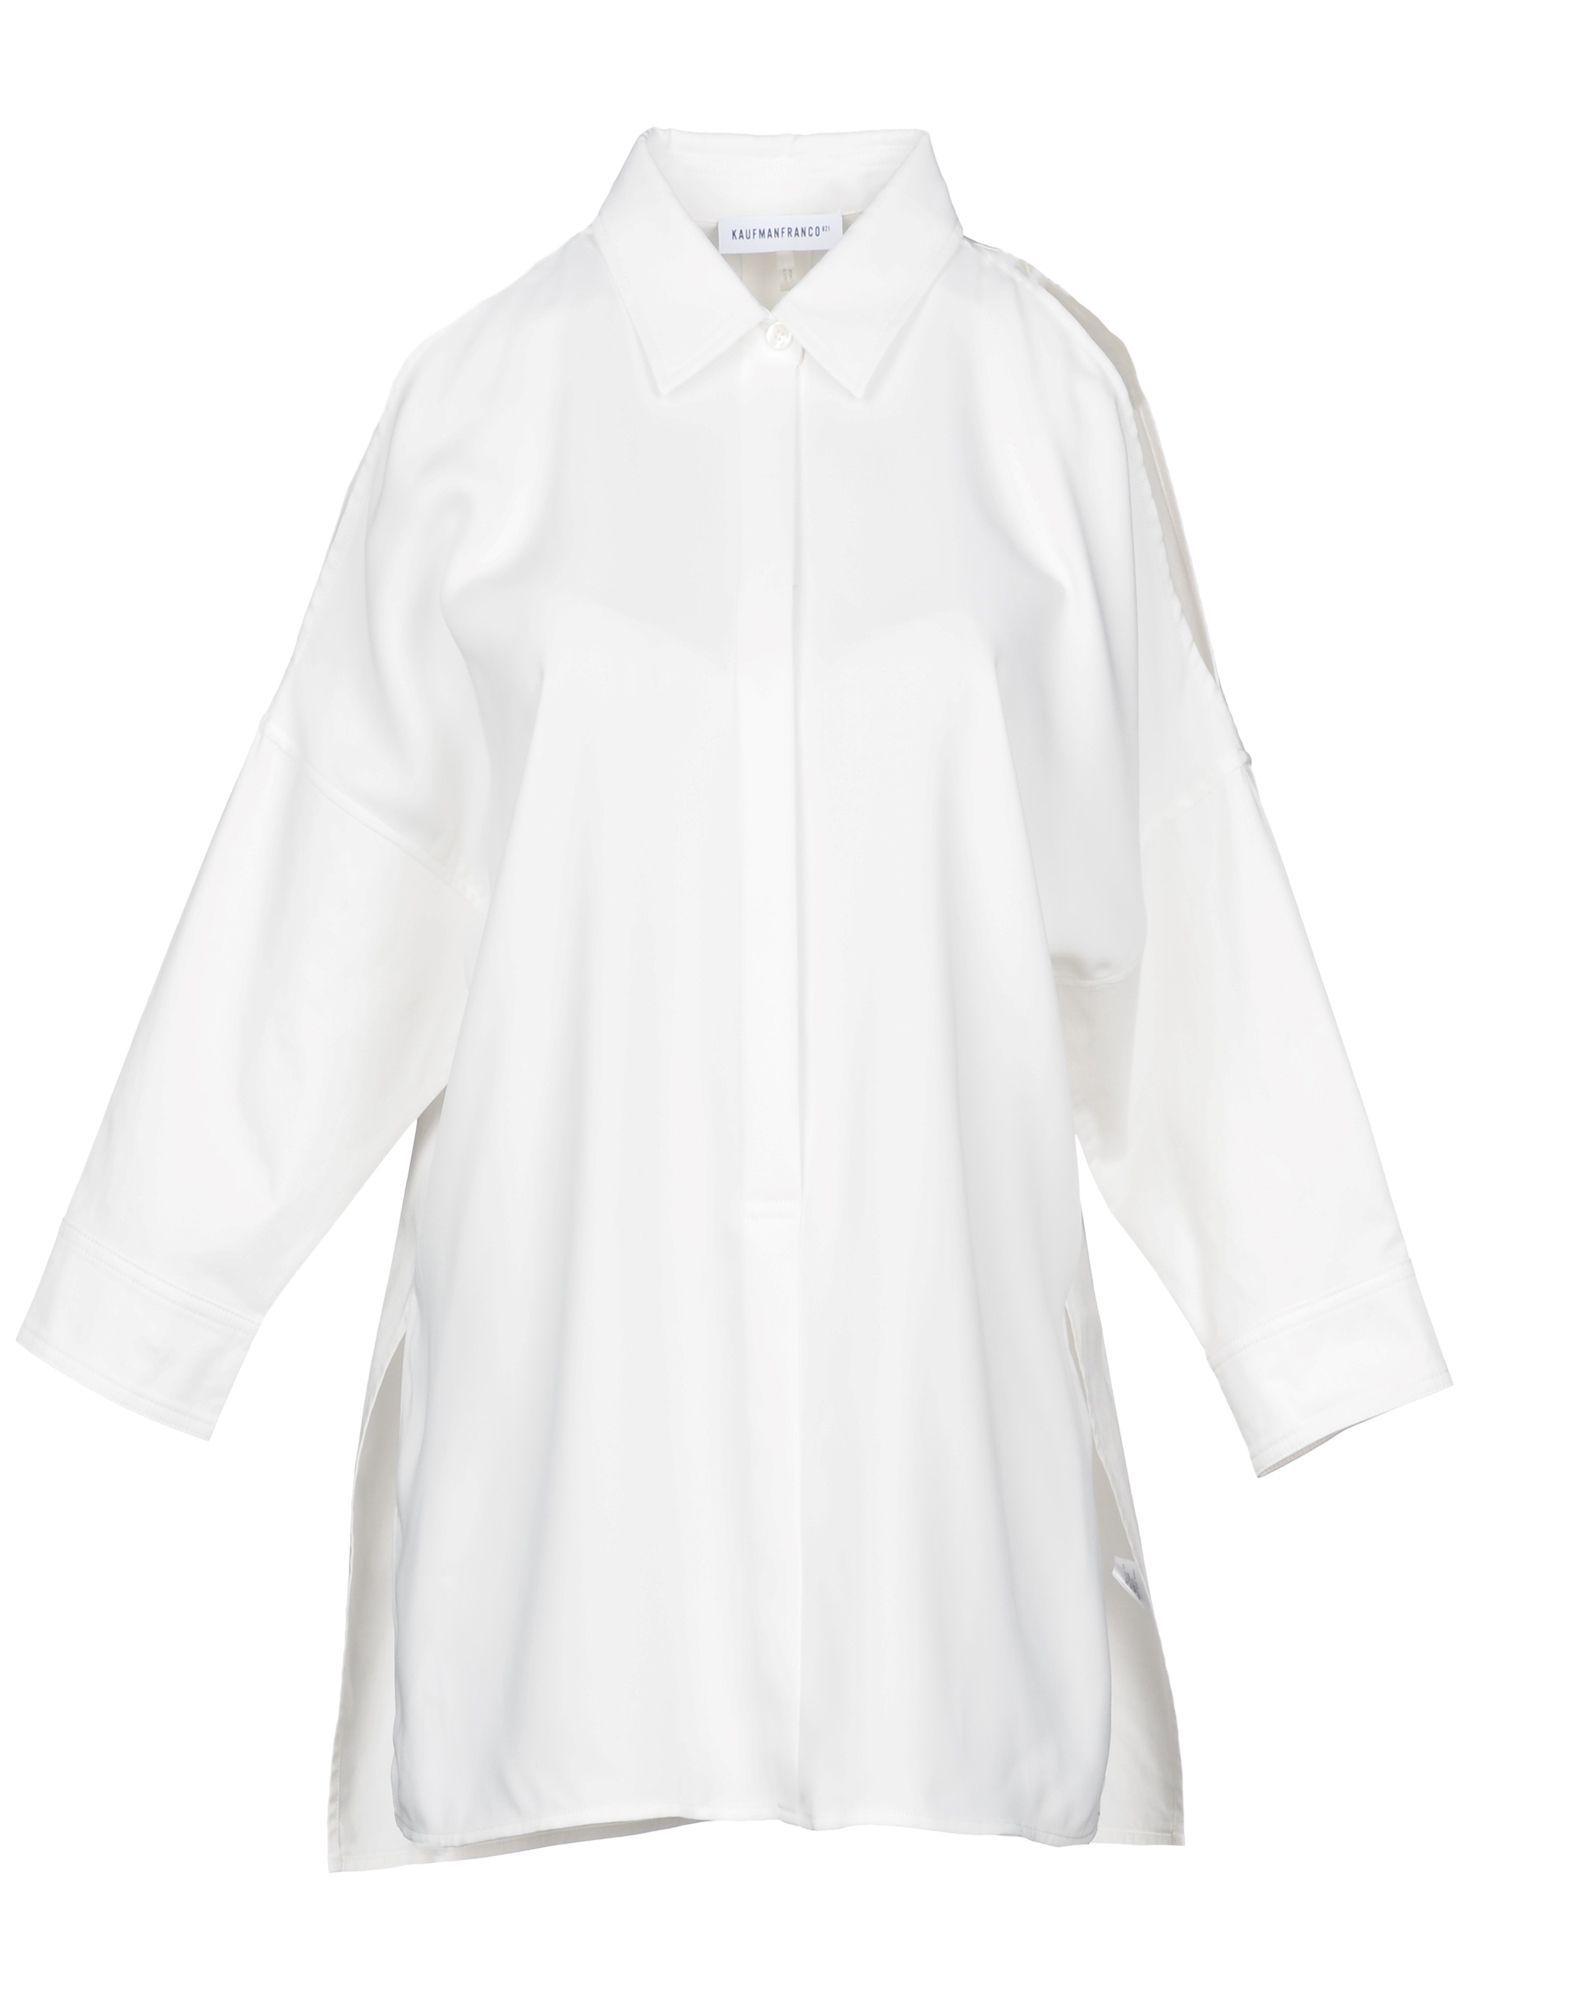 KAUFMANFRANCO Solid Color Shirts & Blouses in White